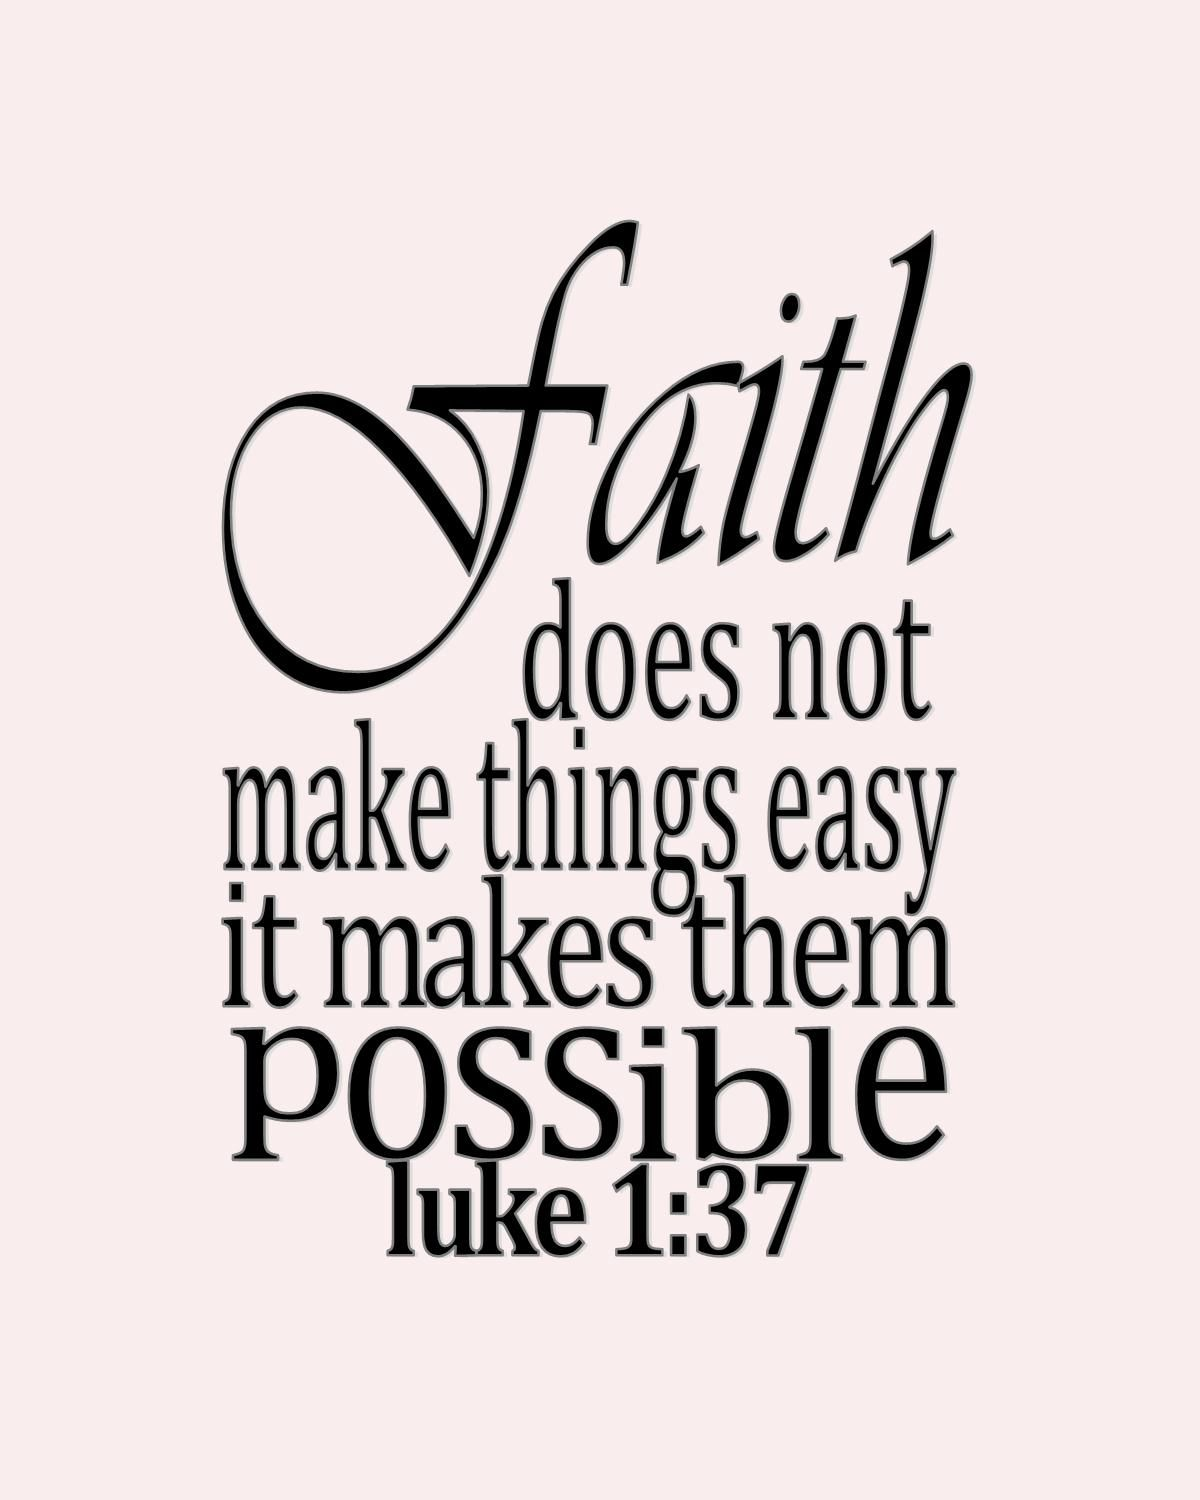 Bible Quote: Bible Verses About Faith - Google Search